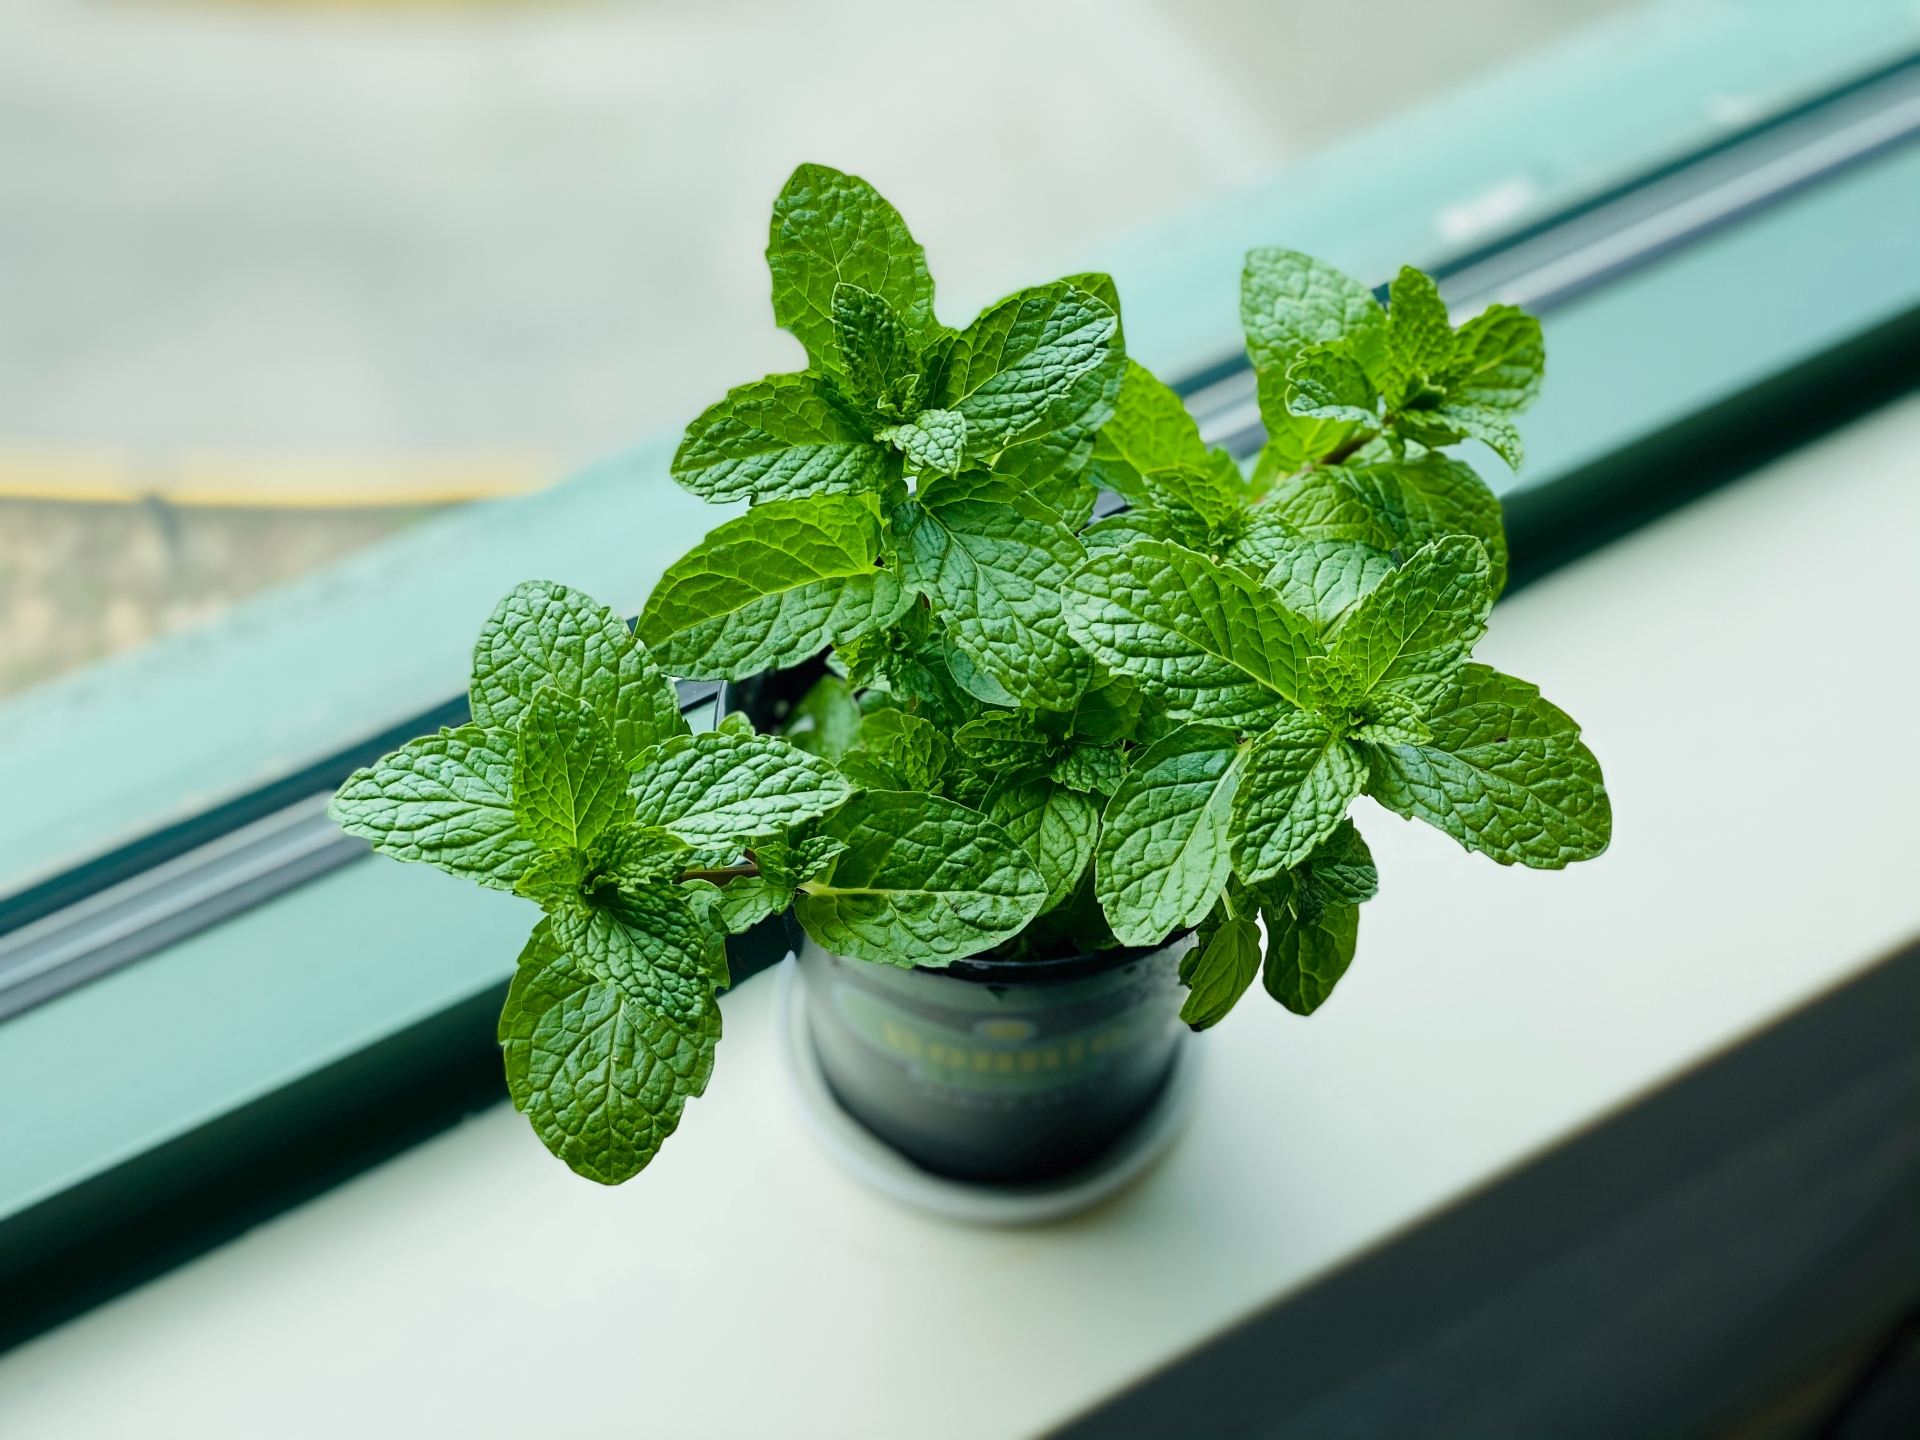 A green mint plant that produces the terpene Ocimene sits on the window sill bathed in sunlight